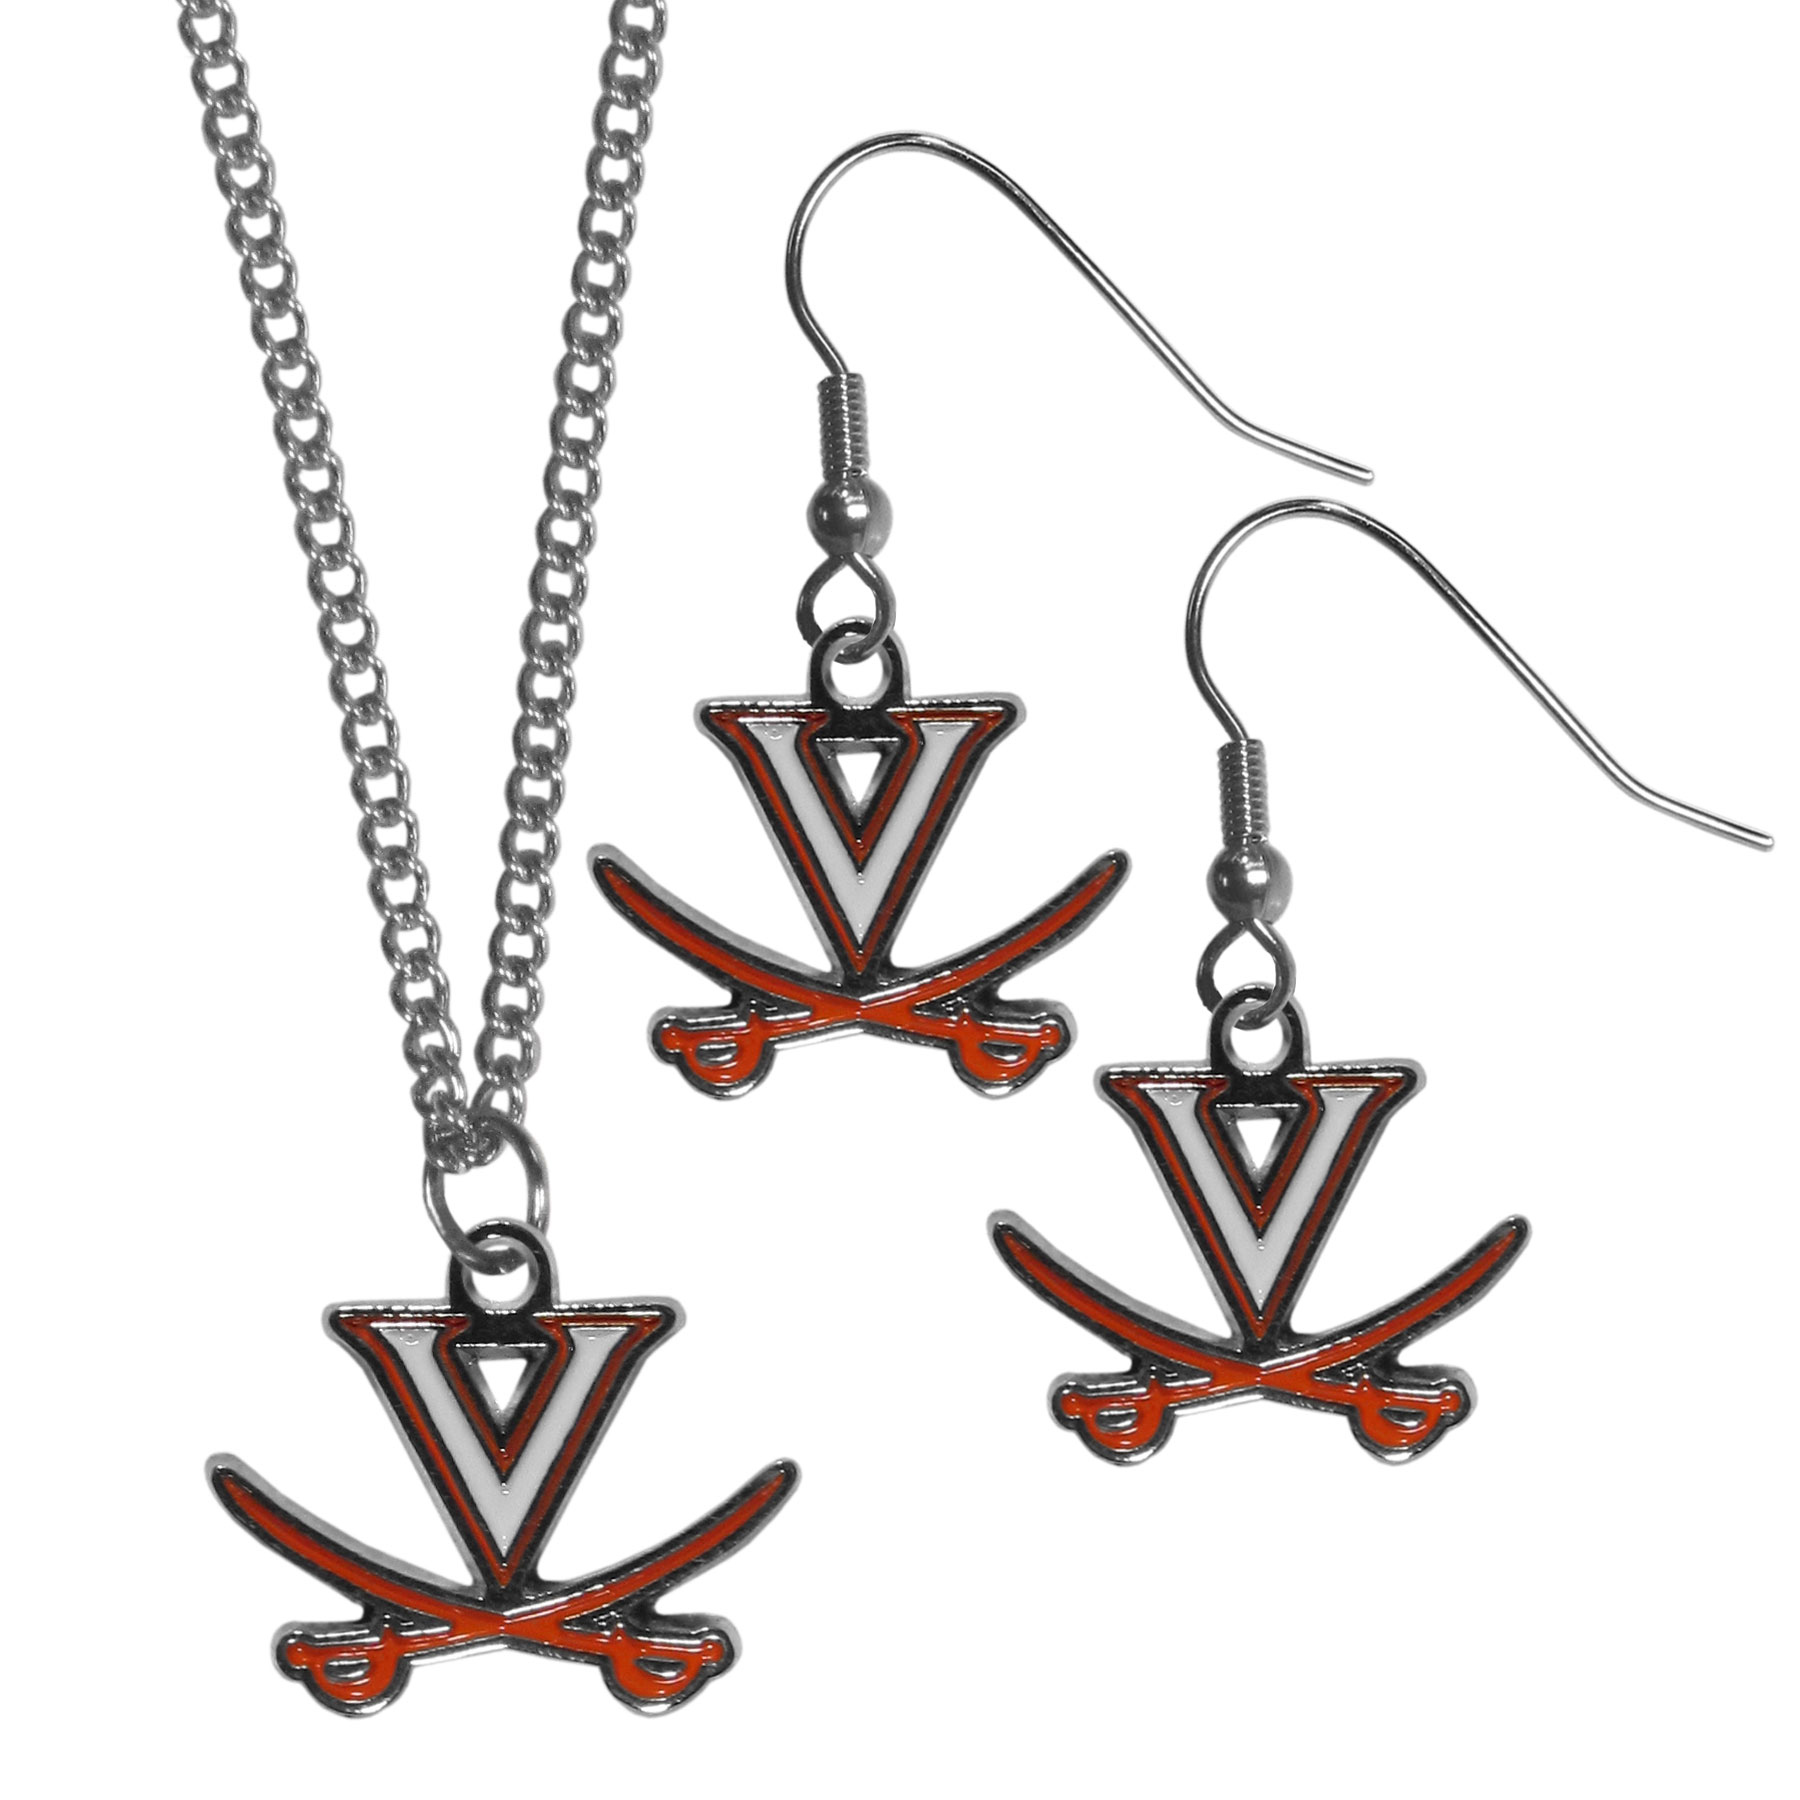 Virginia Cavaliers Dangle Earrings and Chain Necklace Set - This classic jewelry set contains are most popular Virginia Cavaliers dangle earrings and 22 inch chain necklace. The trendy, dangle earrings are lightweight and feature a fully cast metal team charm with enameled team colors. The matching necklace completes this fashion forward combo and is a spirited set that is perfect for game day but nice enough for everyday.